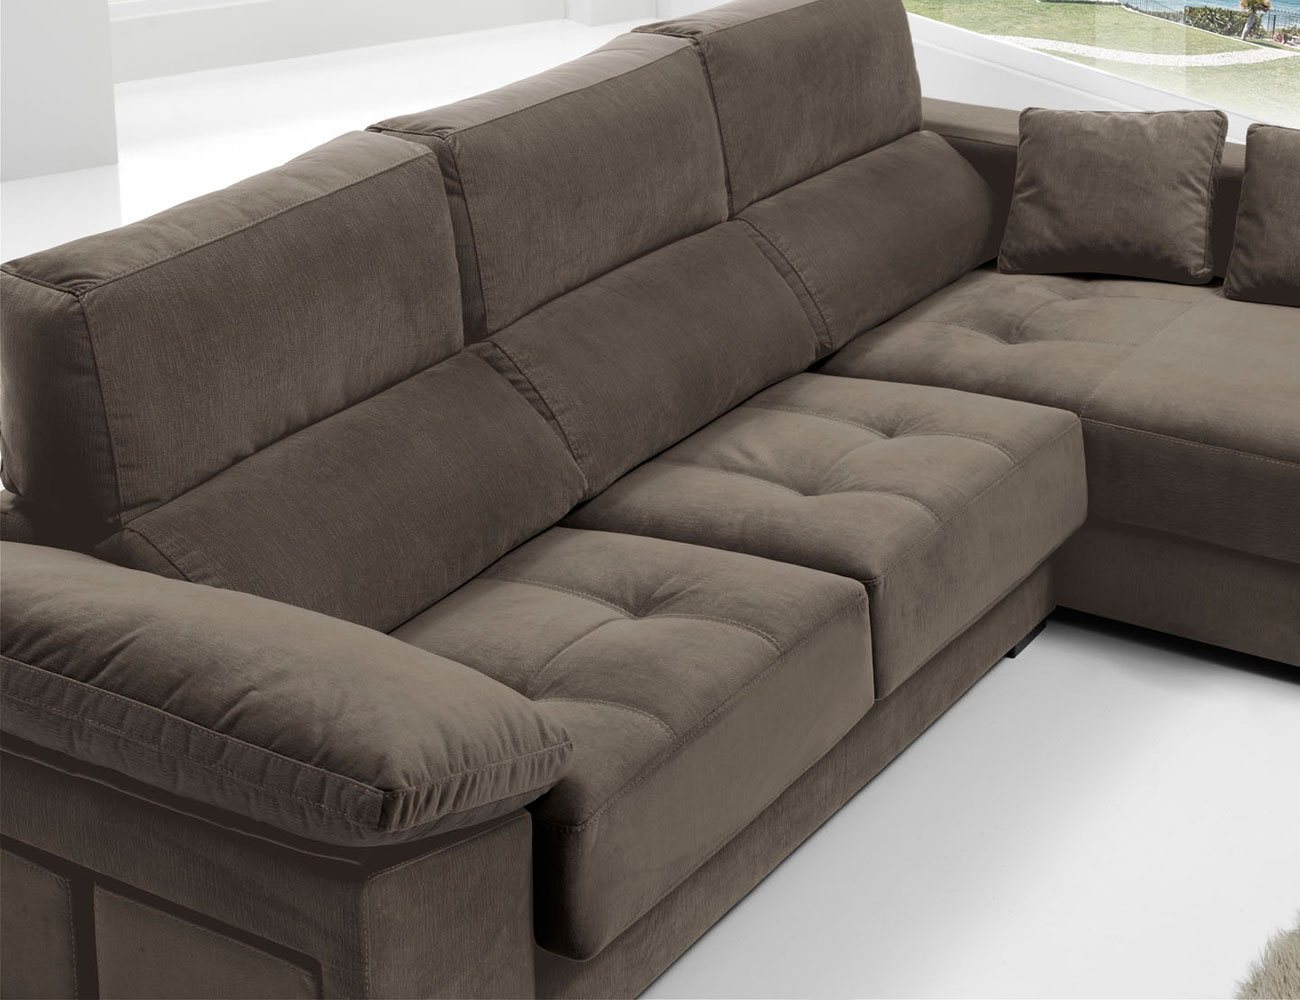 Sofa chaiselongue anti manchas bering pouf 213